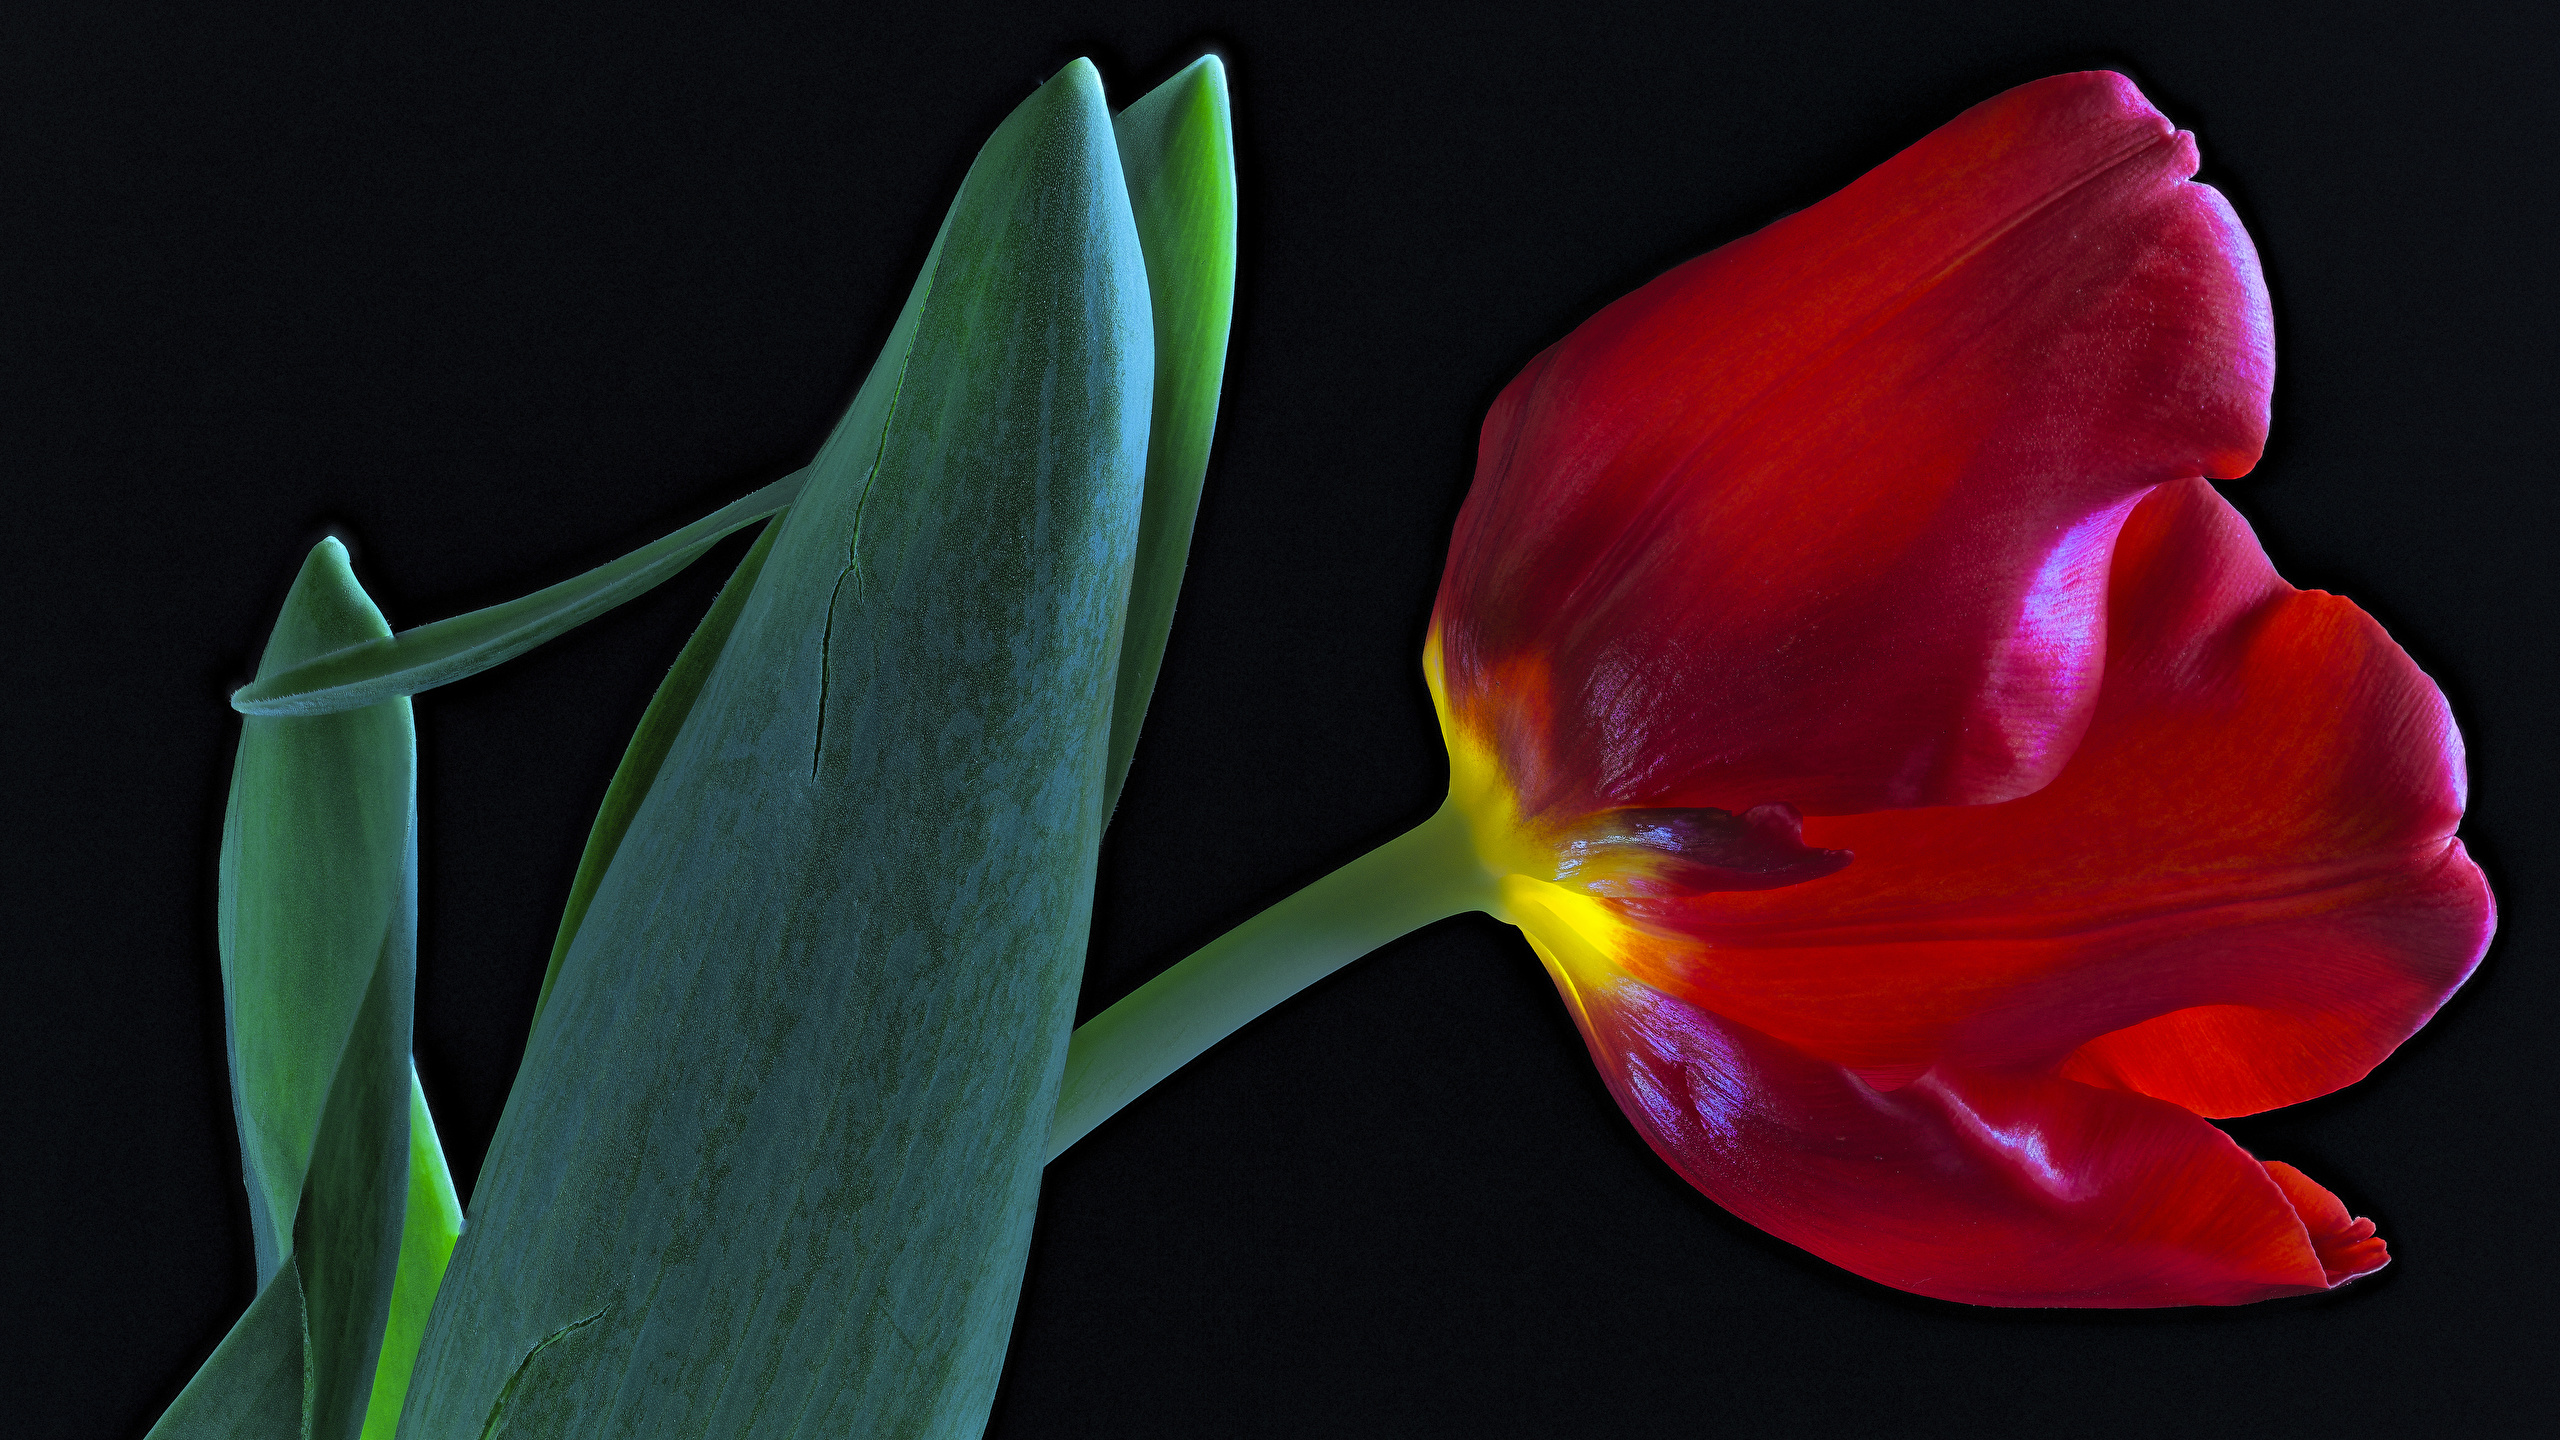 Images Red Tulip Flower Closeup Black Background 2560x1440